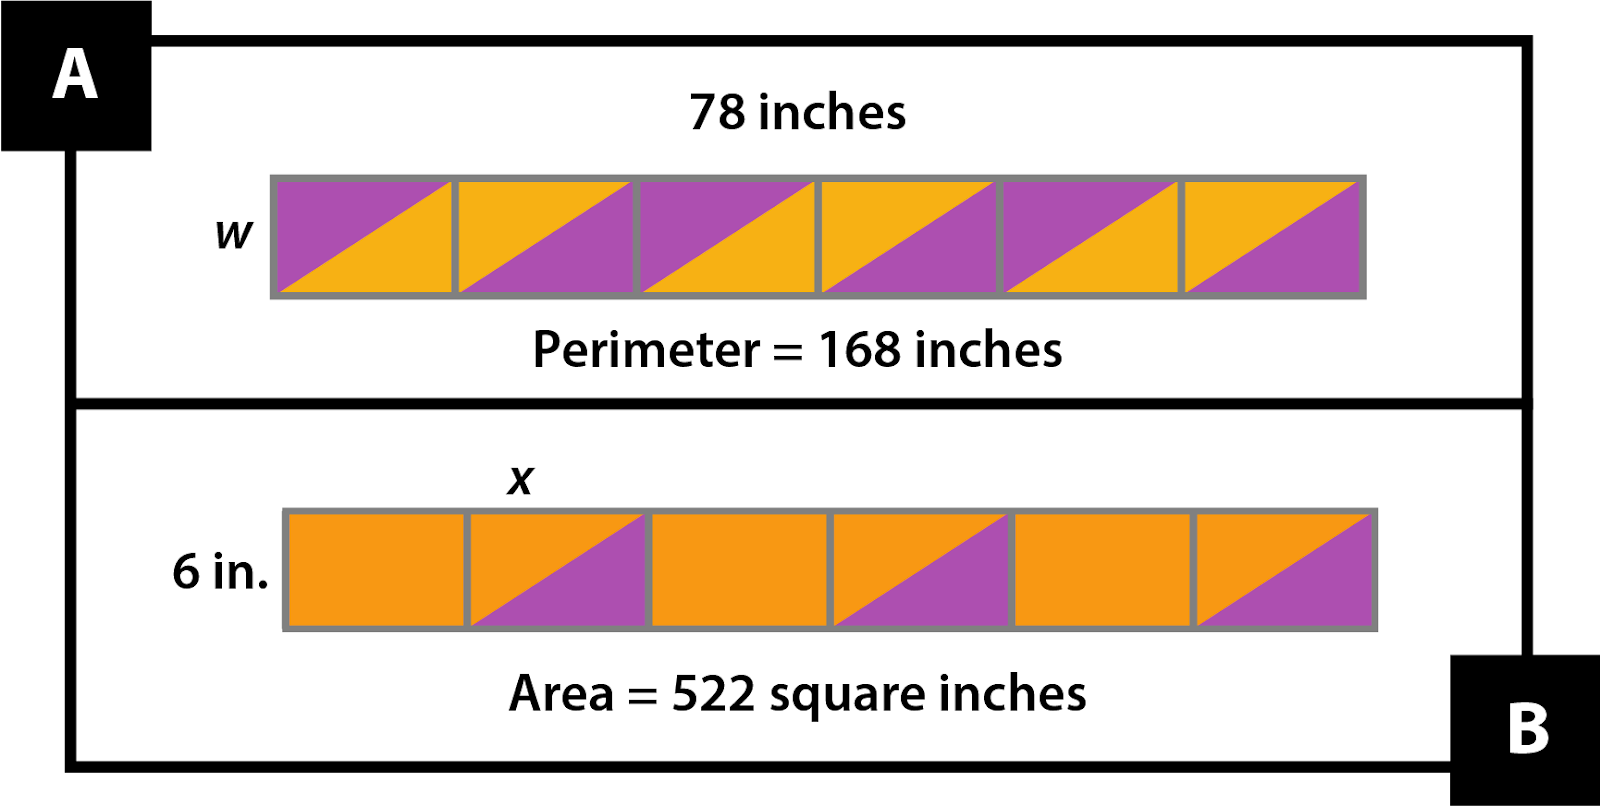 A: A rectangle with 6 equal parts is 78 inches long. Its perimeter is 168 inches. The width, labeled w, is unknown. Each part is 1-half purple, 1-half orange. B: A rectangle with 6 equal parts is 6 inches wide. Its area is 522 square inches. The length, labeled x, is unknown. The 2nd, 4th, and 6th parts are 1-half orange, 1-half purple. The 1st, 3rd, and 5th parts are orange.